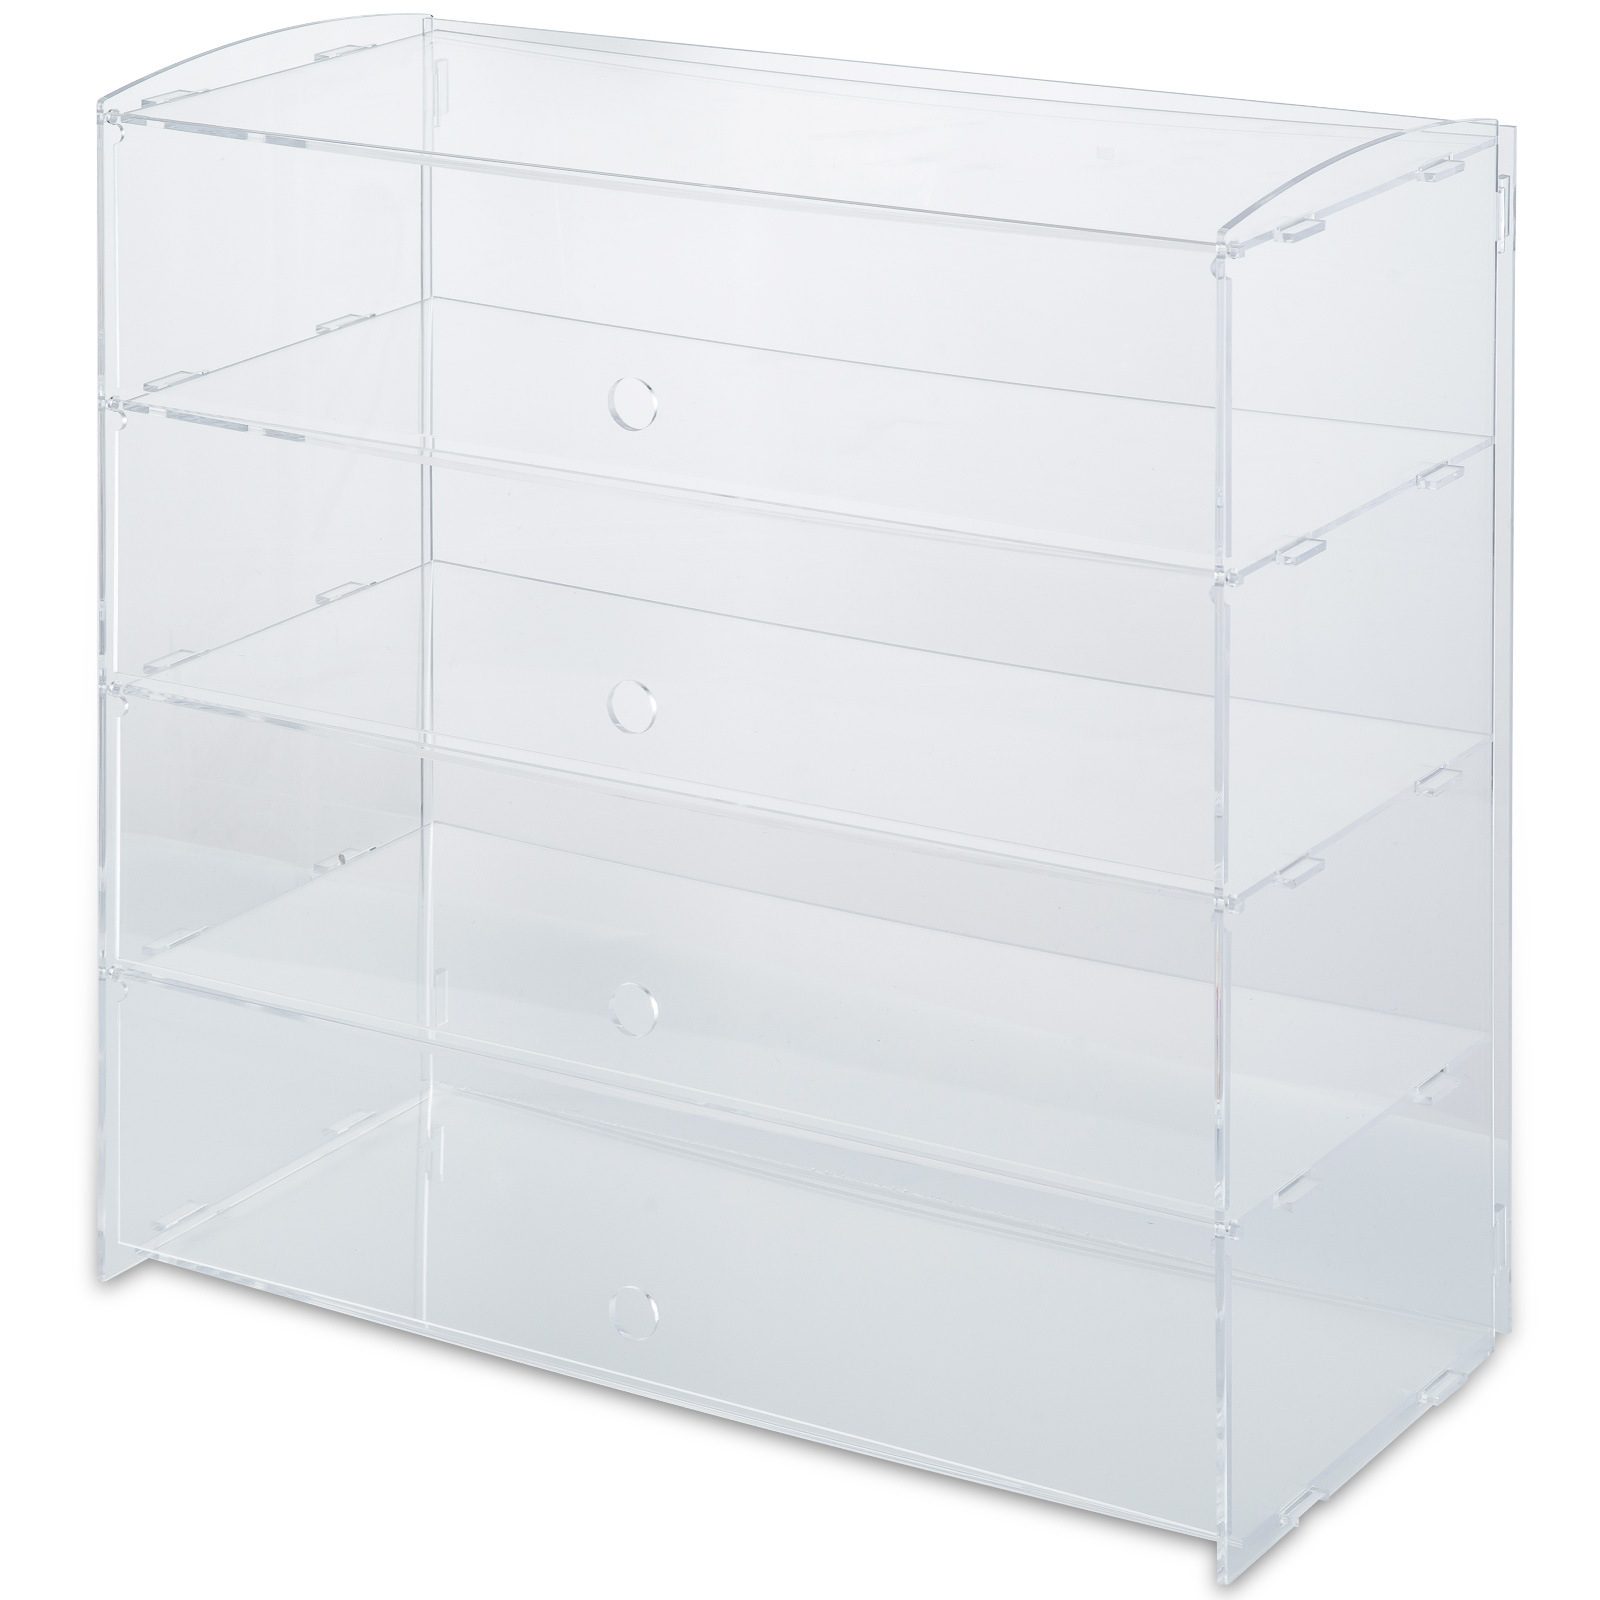 thumbnail 73 - 2-3-4-Shelves-Acrylic-Display-Cabinet-Glued-Unassembled-Bakery-Clear-Pastry